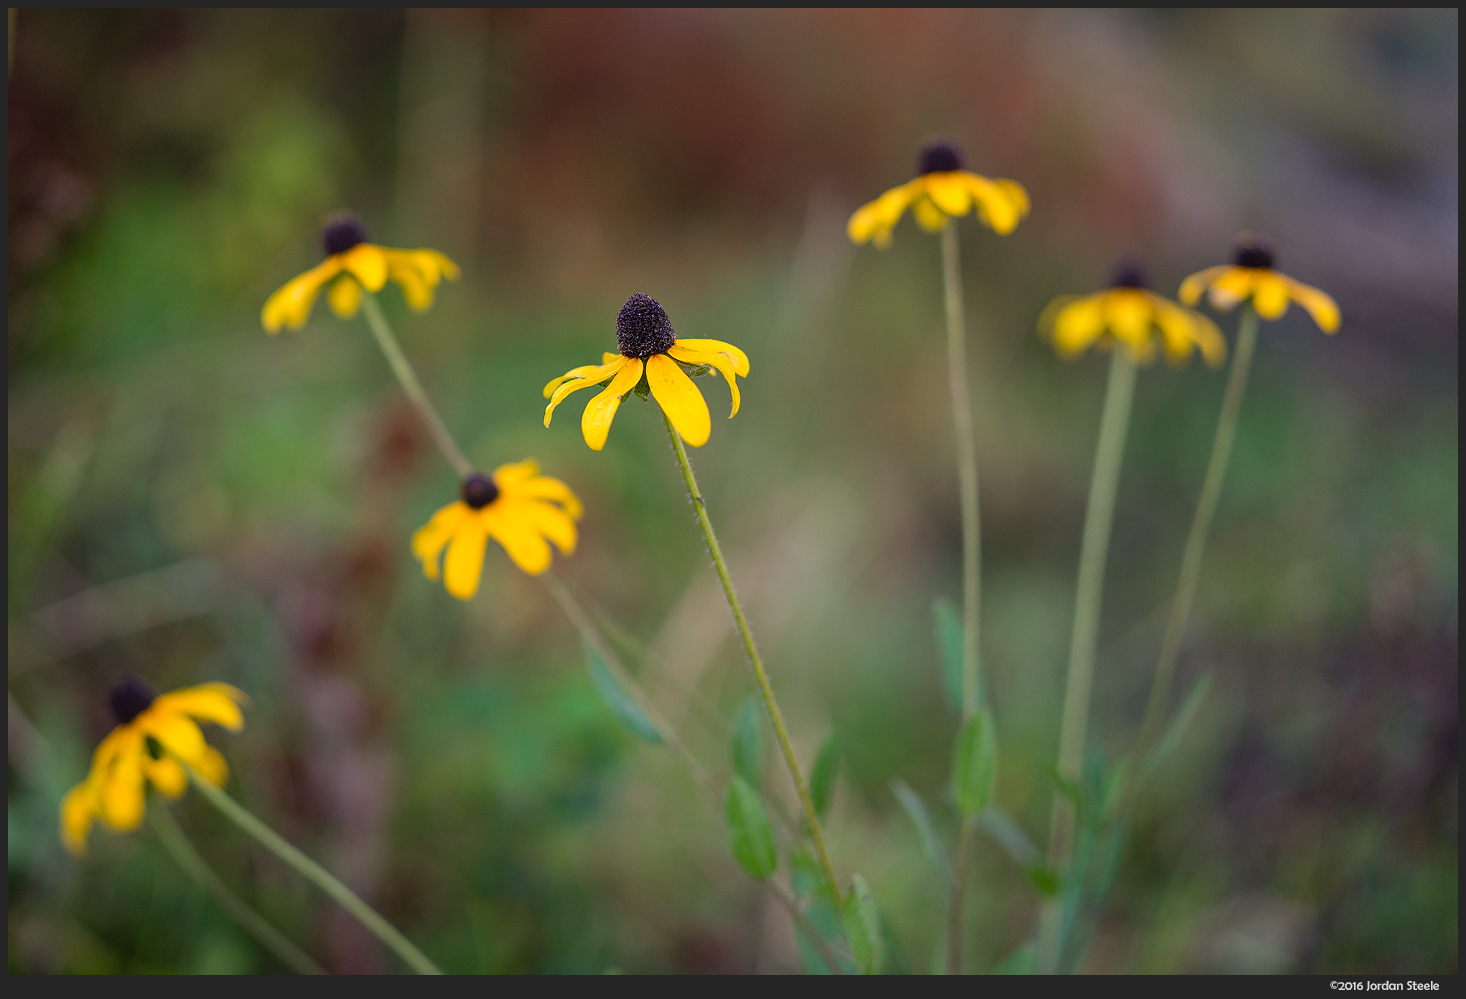 Black Eyed Susans - Sony A7 II with Zeiss FE 50mm f/1.4 @ f/1.4